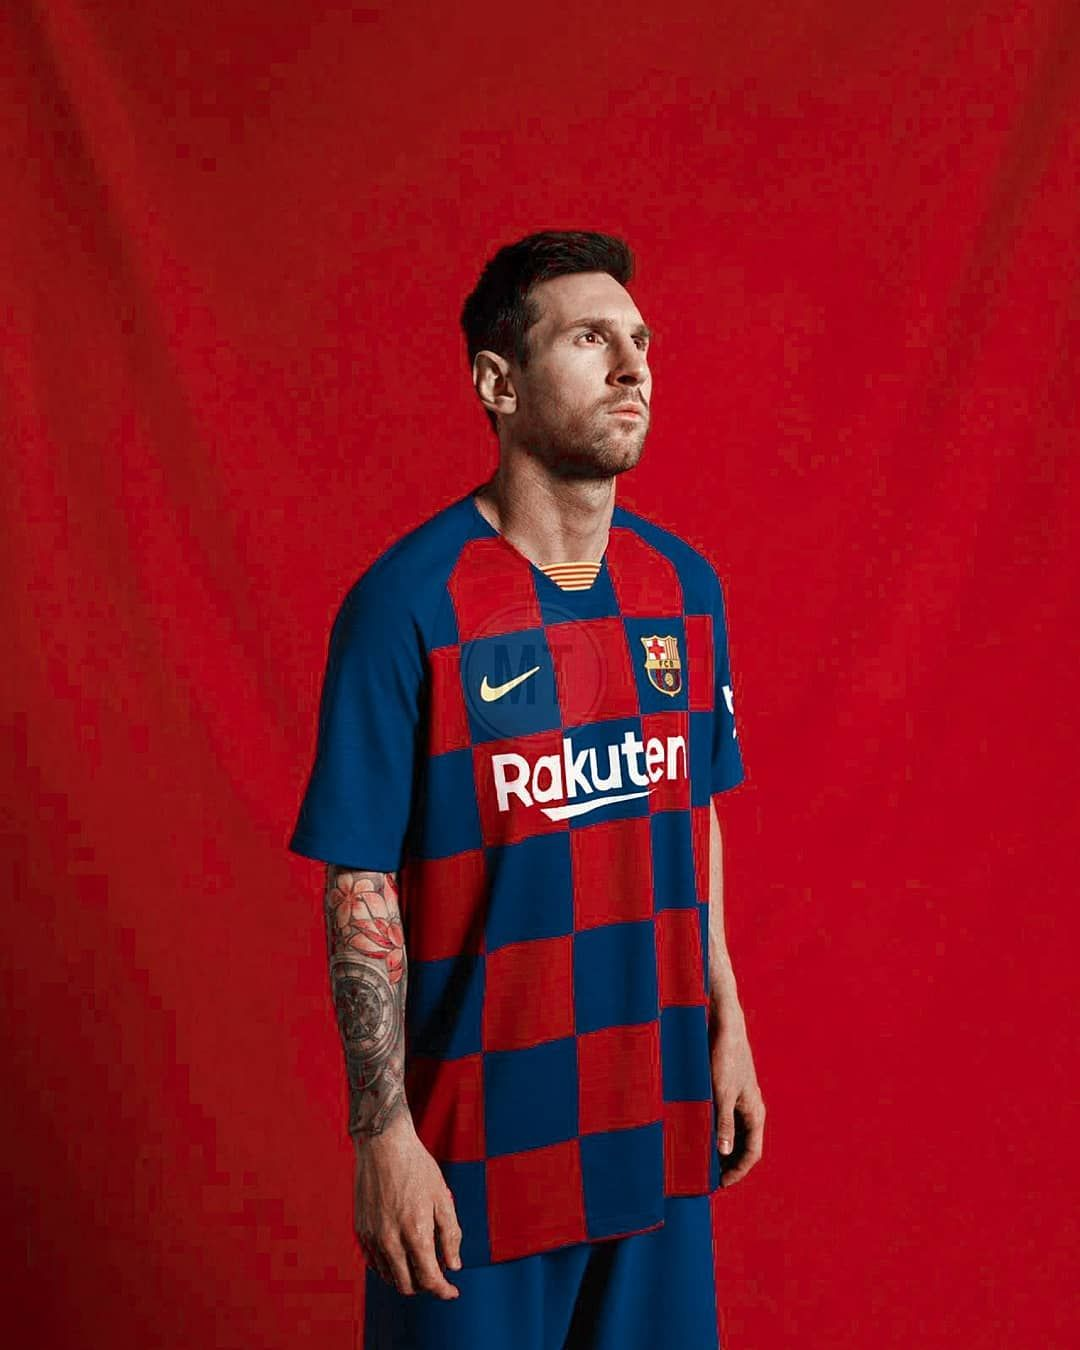 New Kit Fcbarcelona Fotos De Futbol Futbol Messi